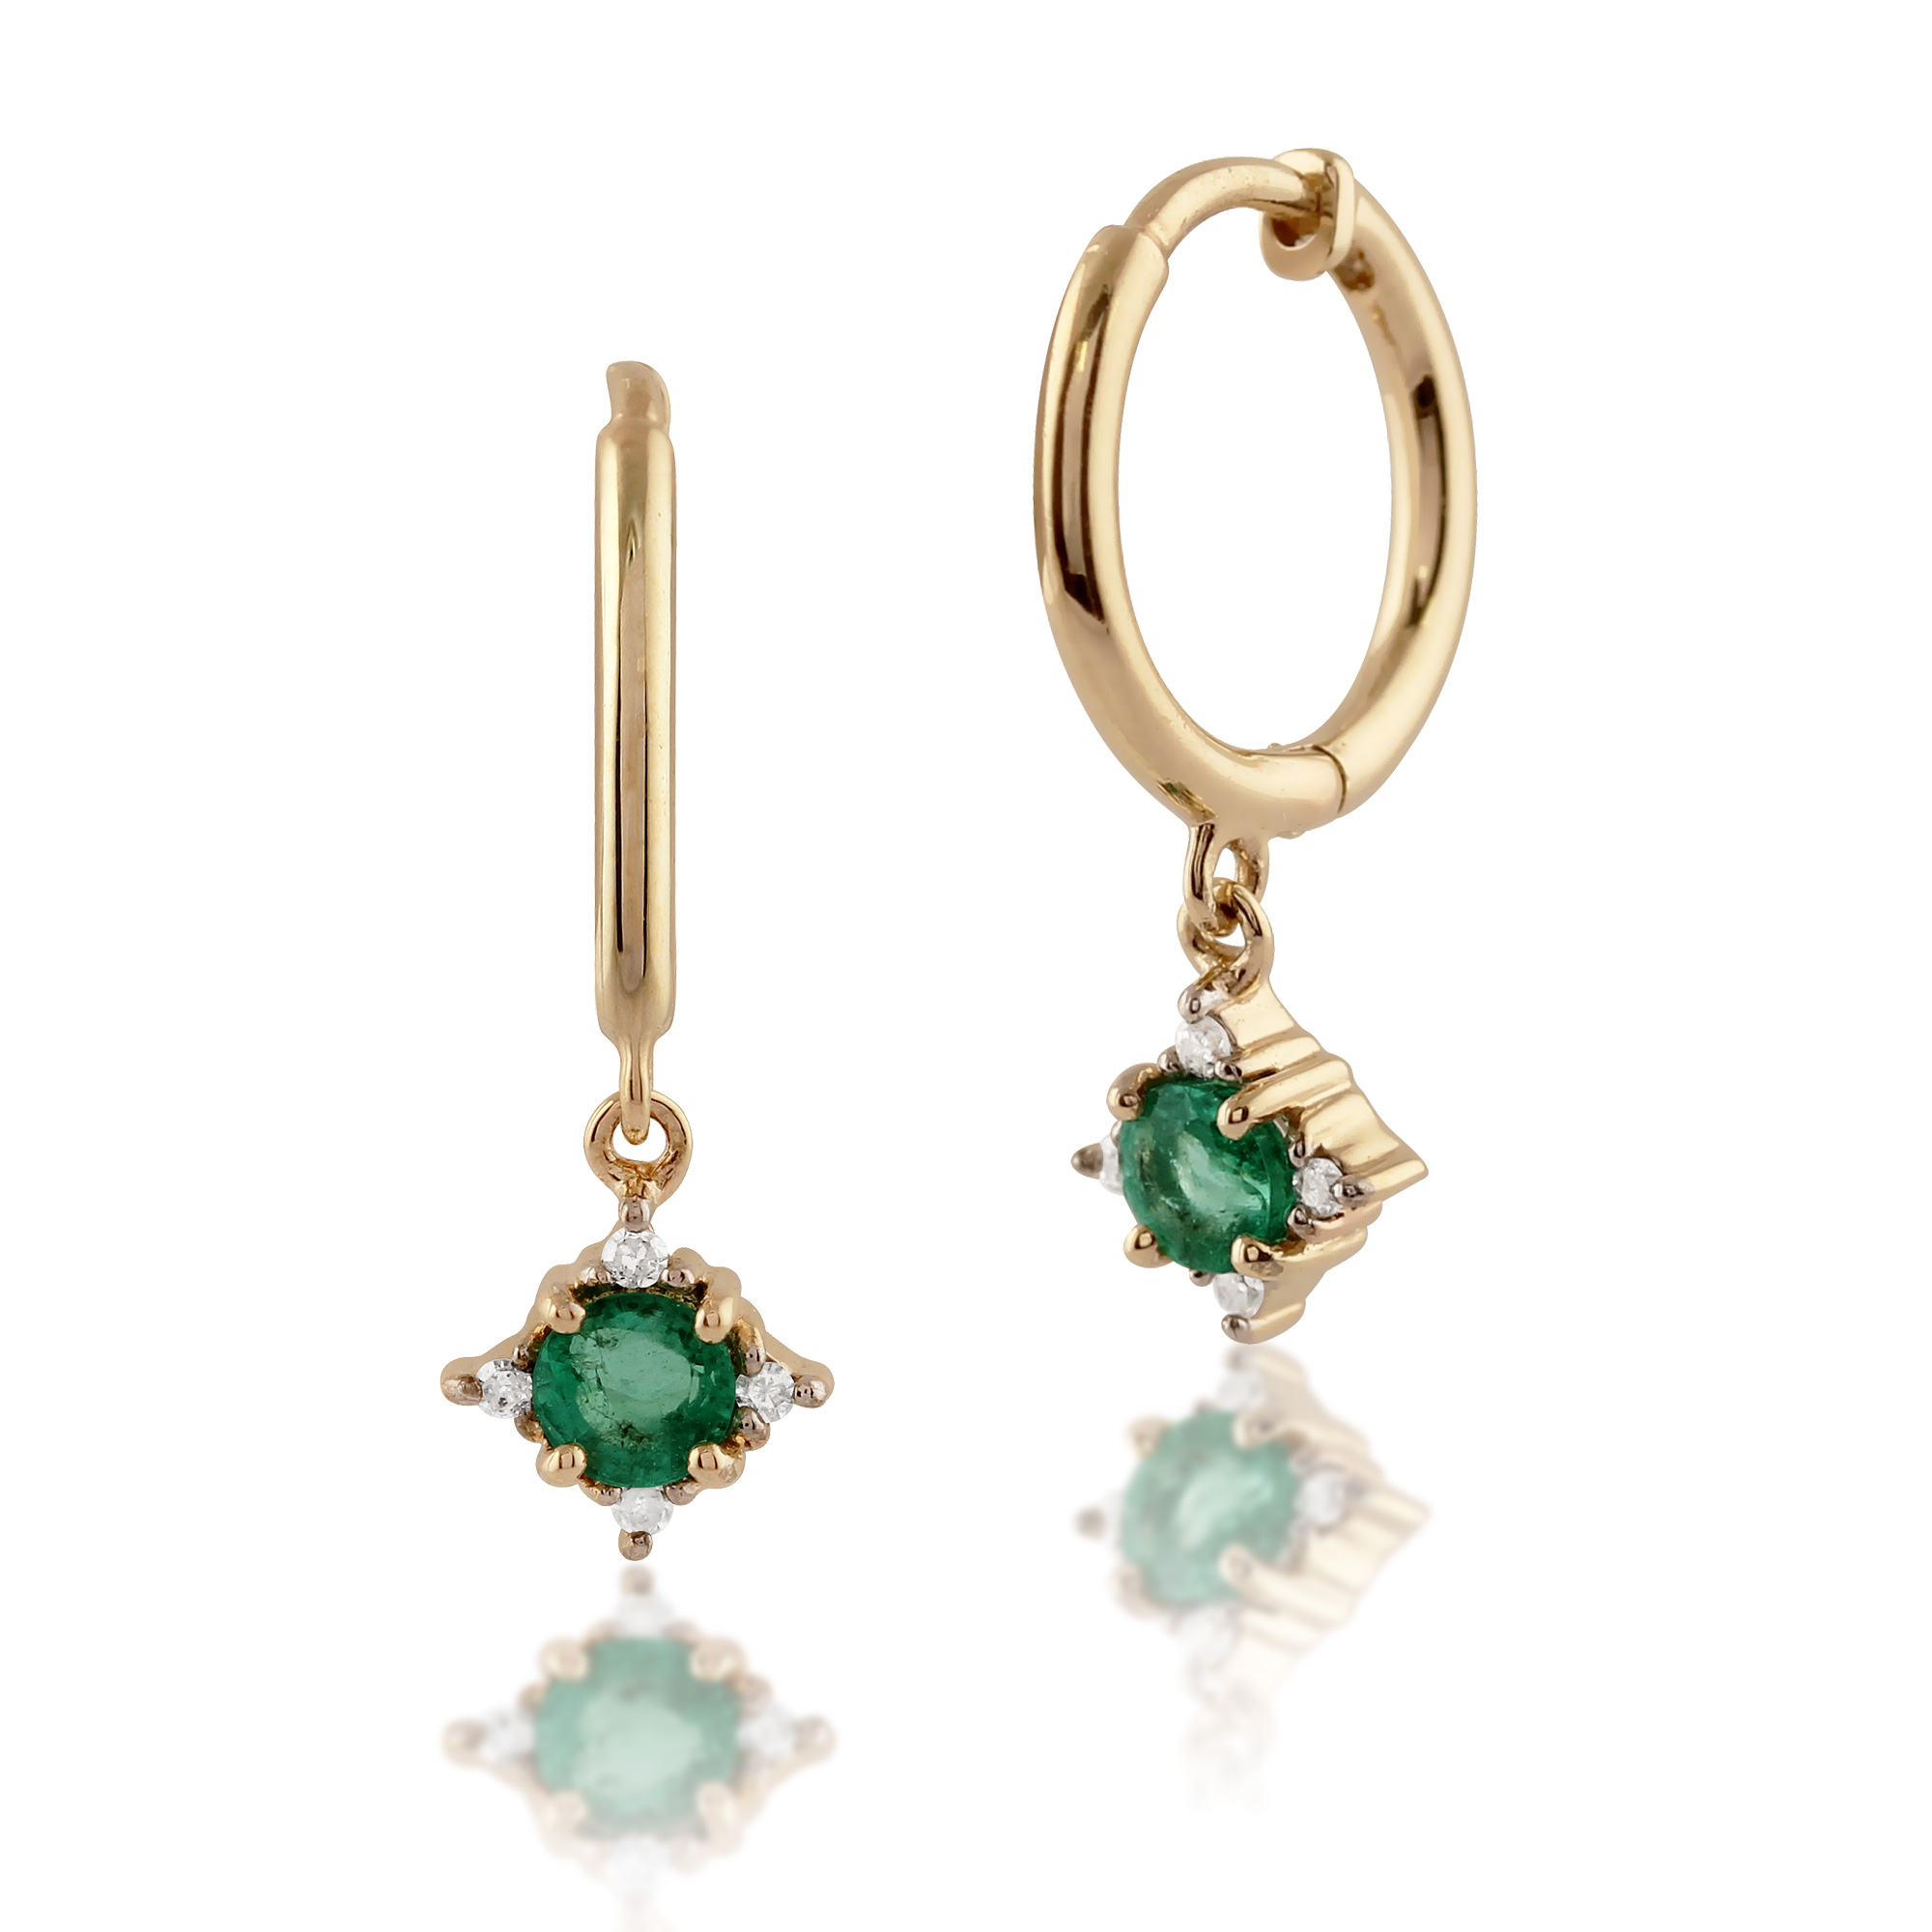 Gemondo 9ct Yellow Gold 0.28ct Emerald & Diamond Hoop Earrings